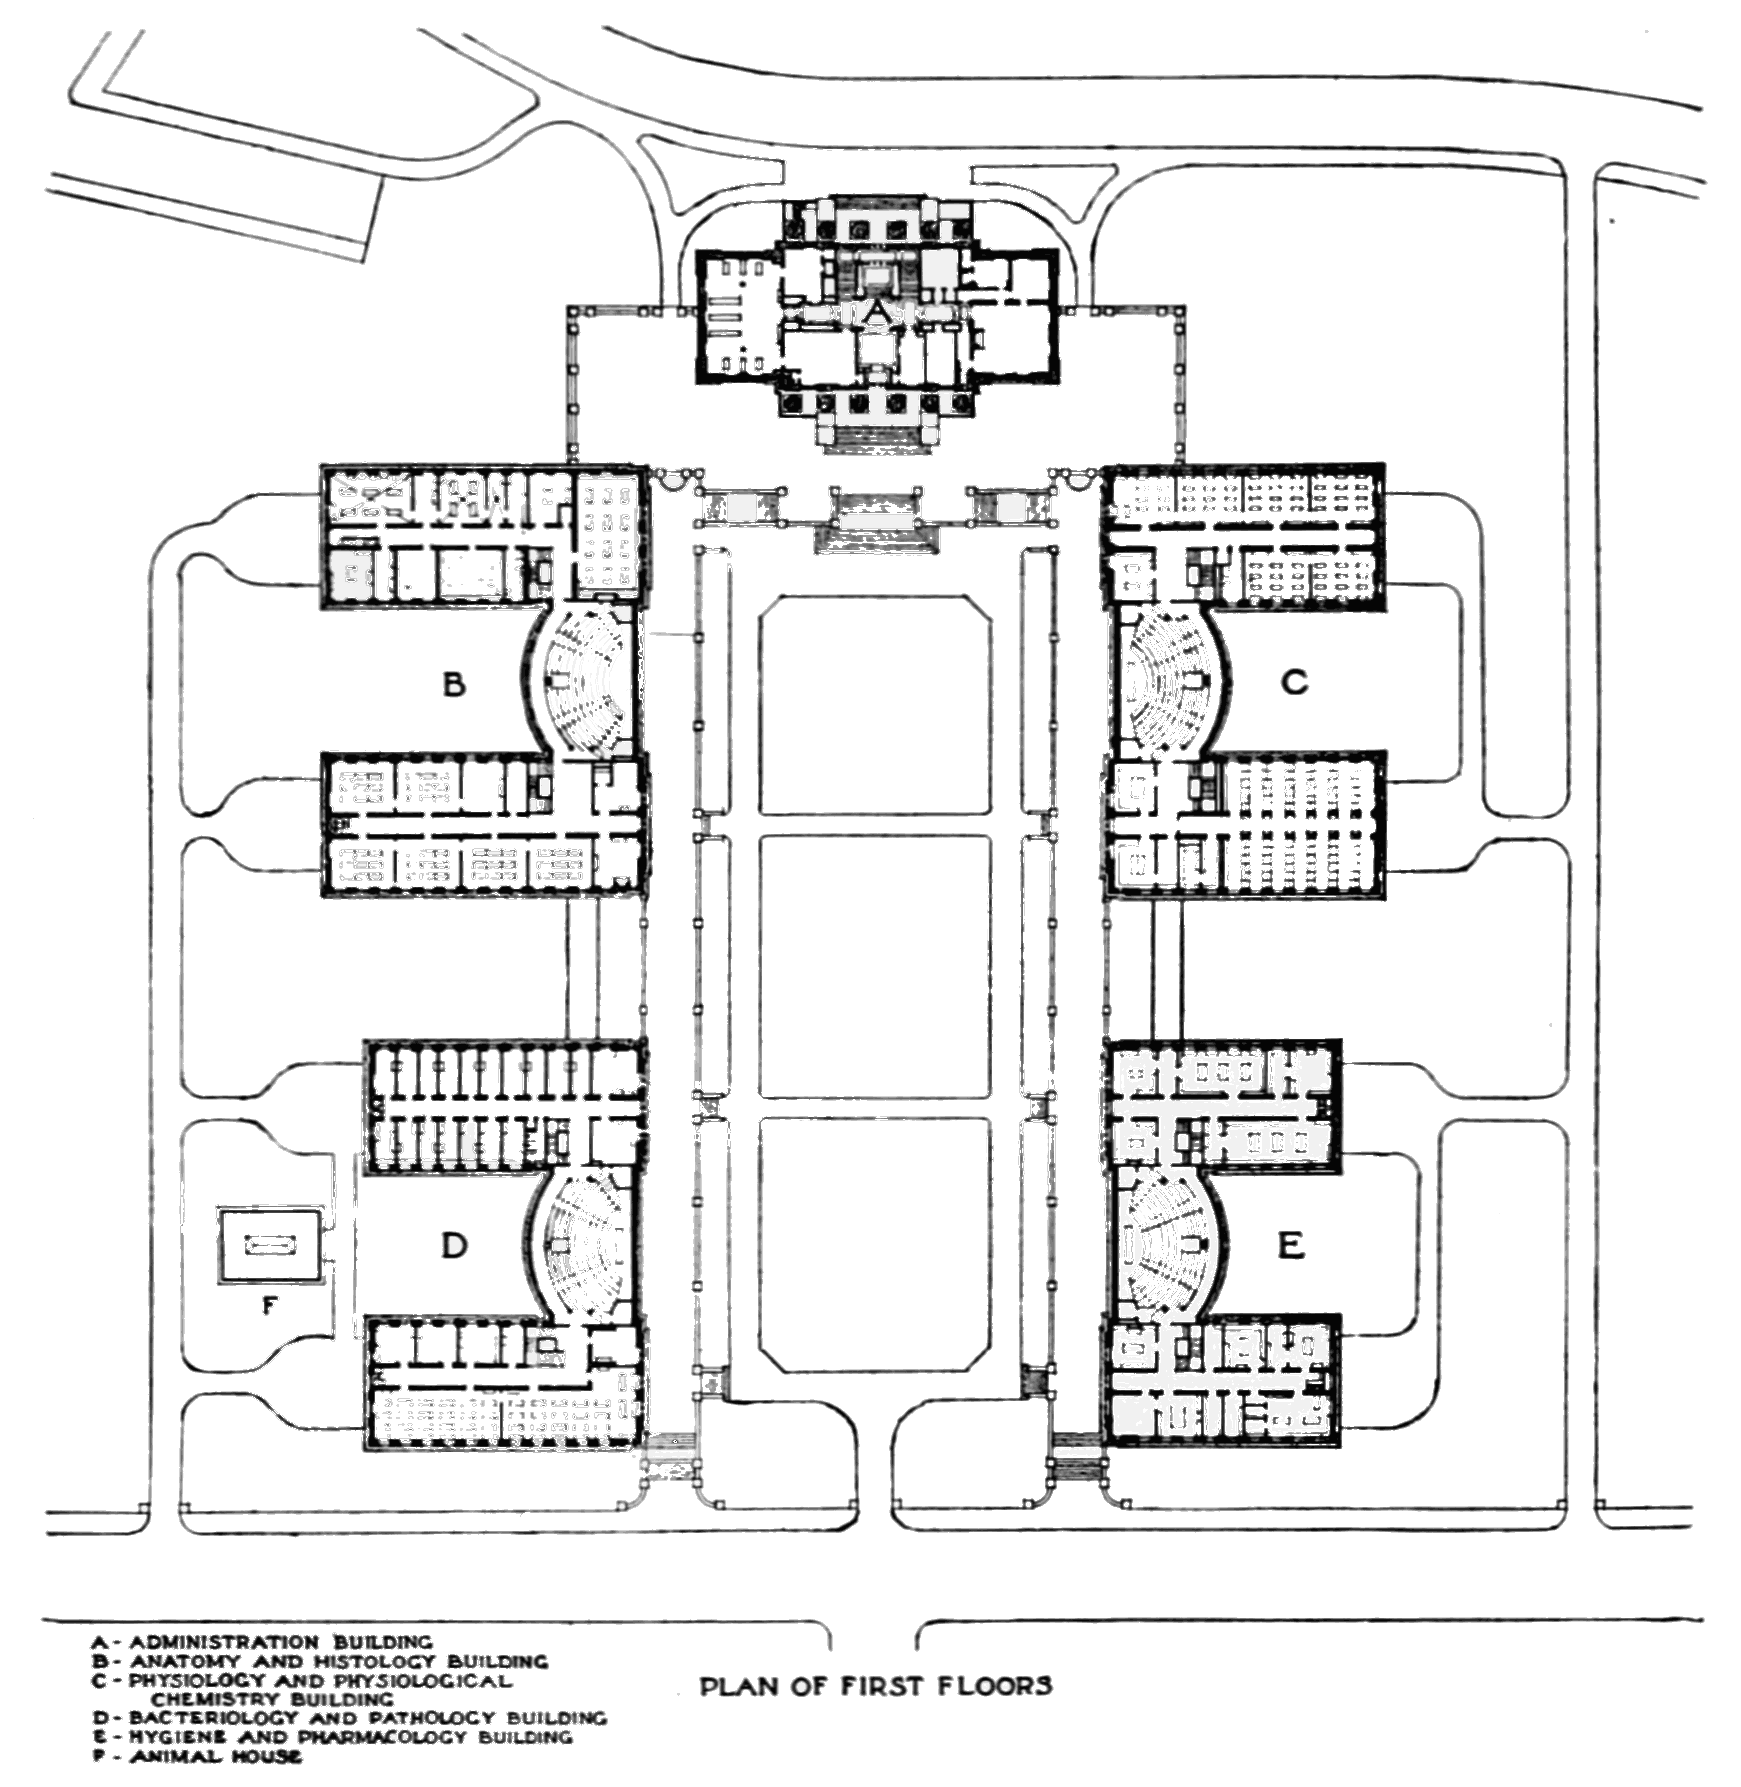 Filepsm V69 D097 Plan Of The New Harvard Medical Schoolg